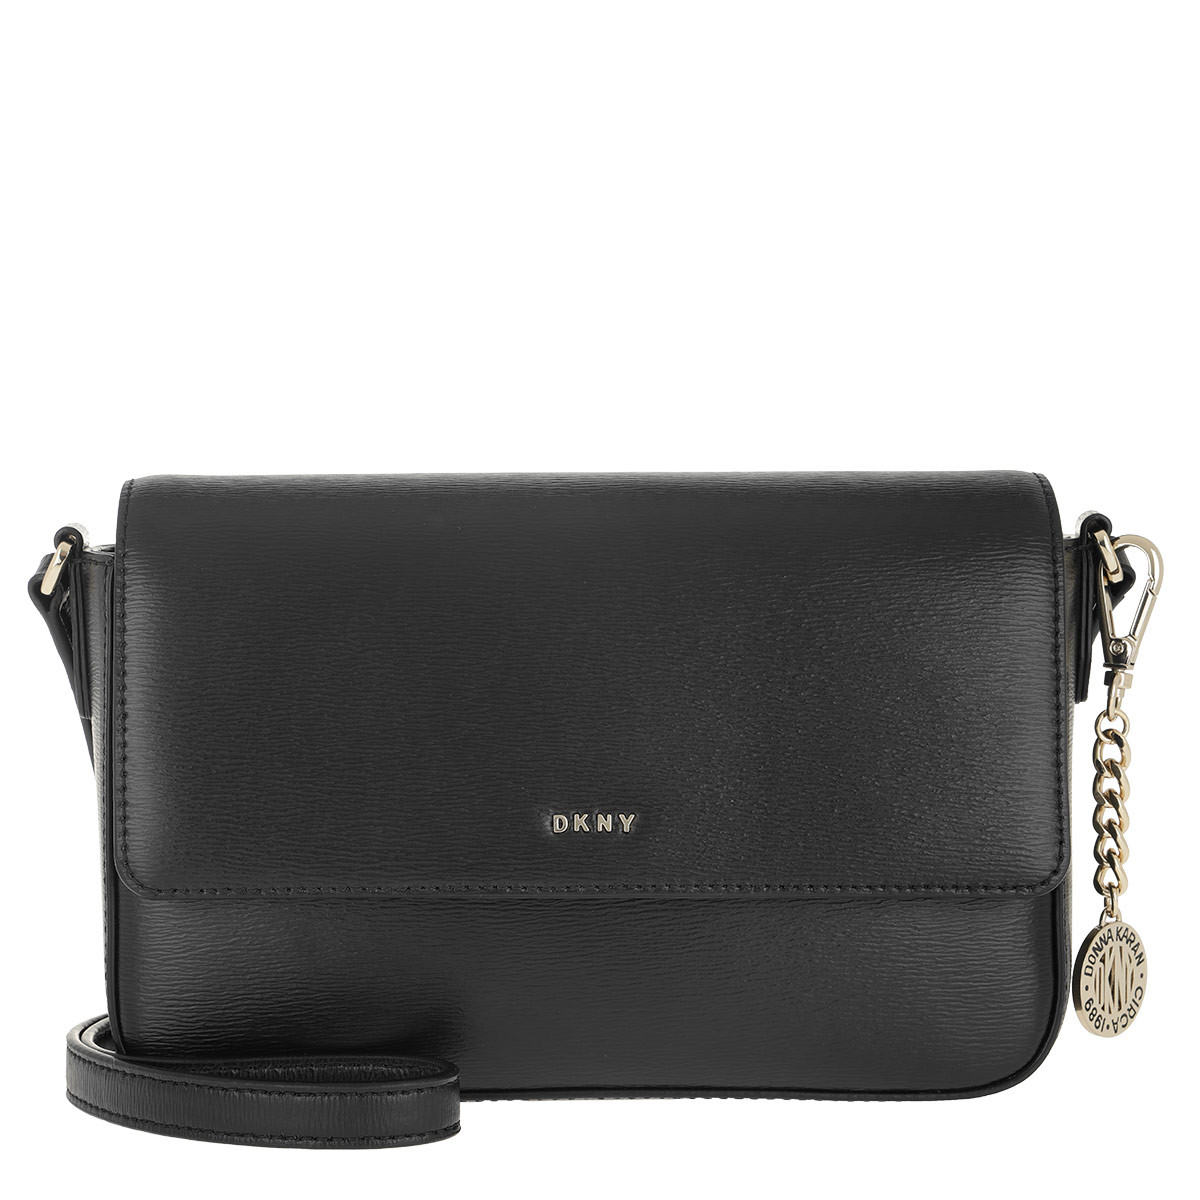 DKNY Umhängetasche - Bryant Medium Crossbody Bag Black/Gold - in schwarz - für Damen